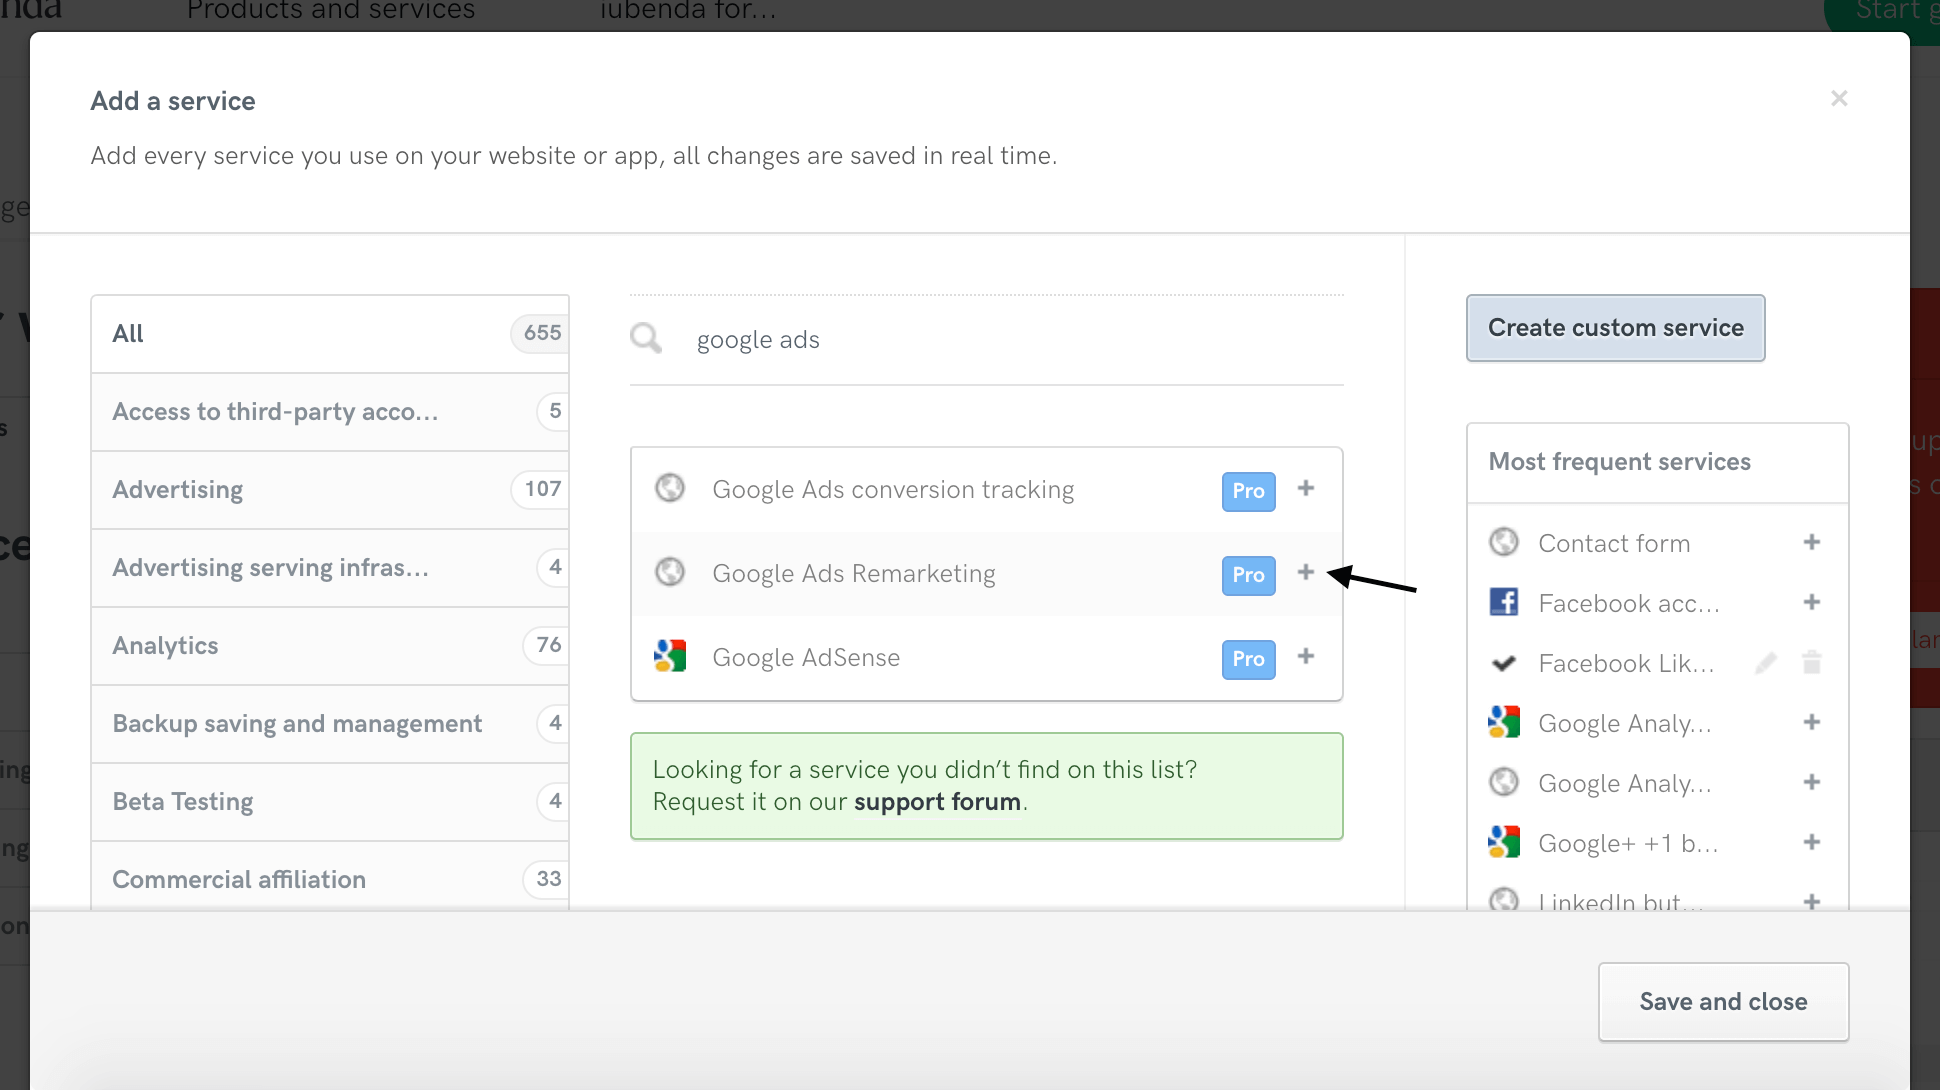 Add 'Google Ads Remarketing' service